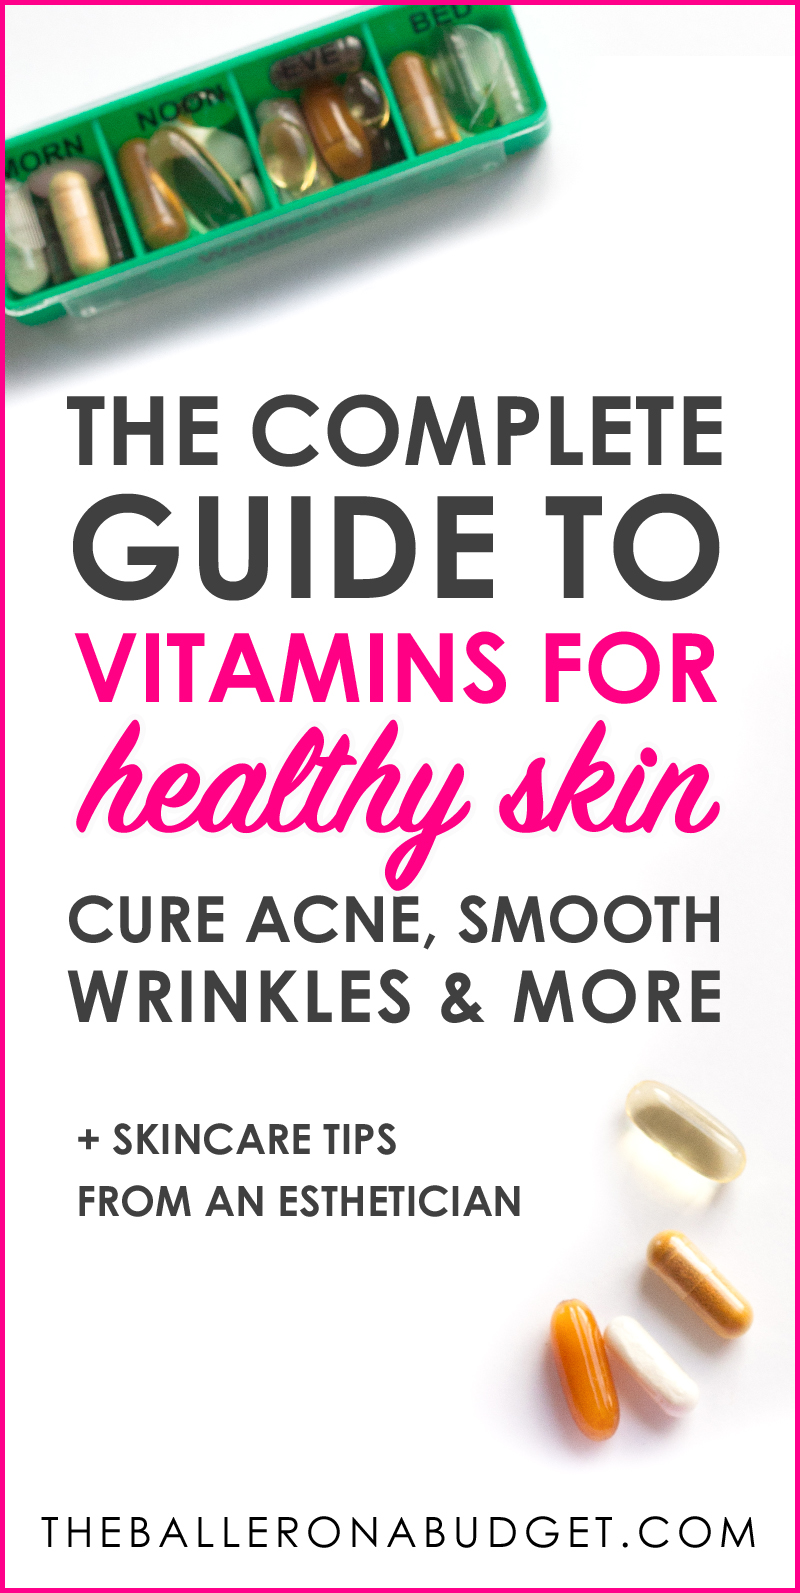 You might already know that a proper diet can help with achieving better skin. But what about adding vitamins and supplements to your skincare regimen? This is the complete guide to vitamins from iHerb to beat acne, smooth wrinkles and more, as told by an esthetician. - www.theballeronabudget.com